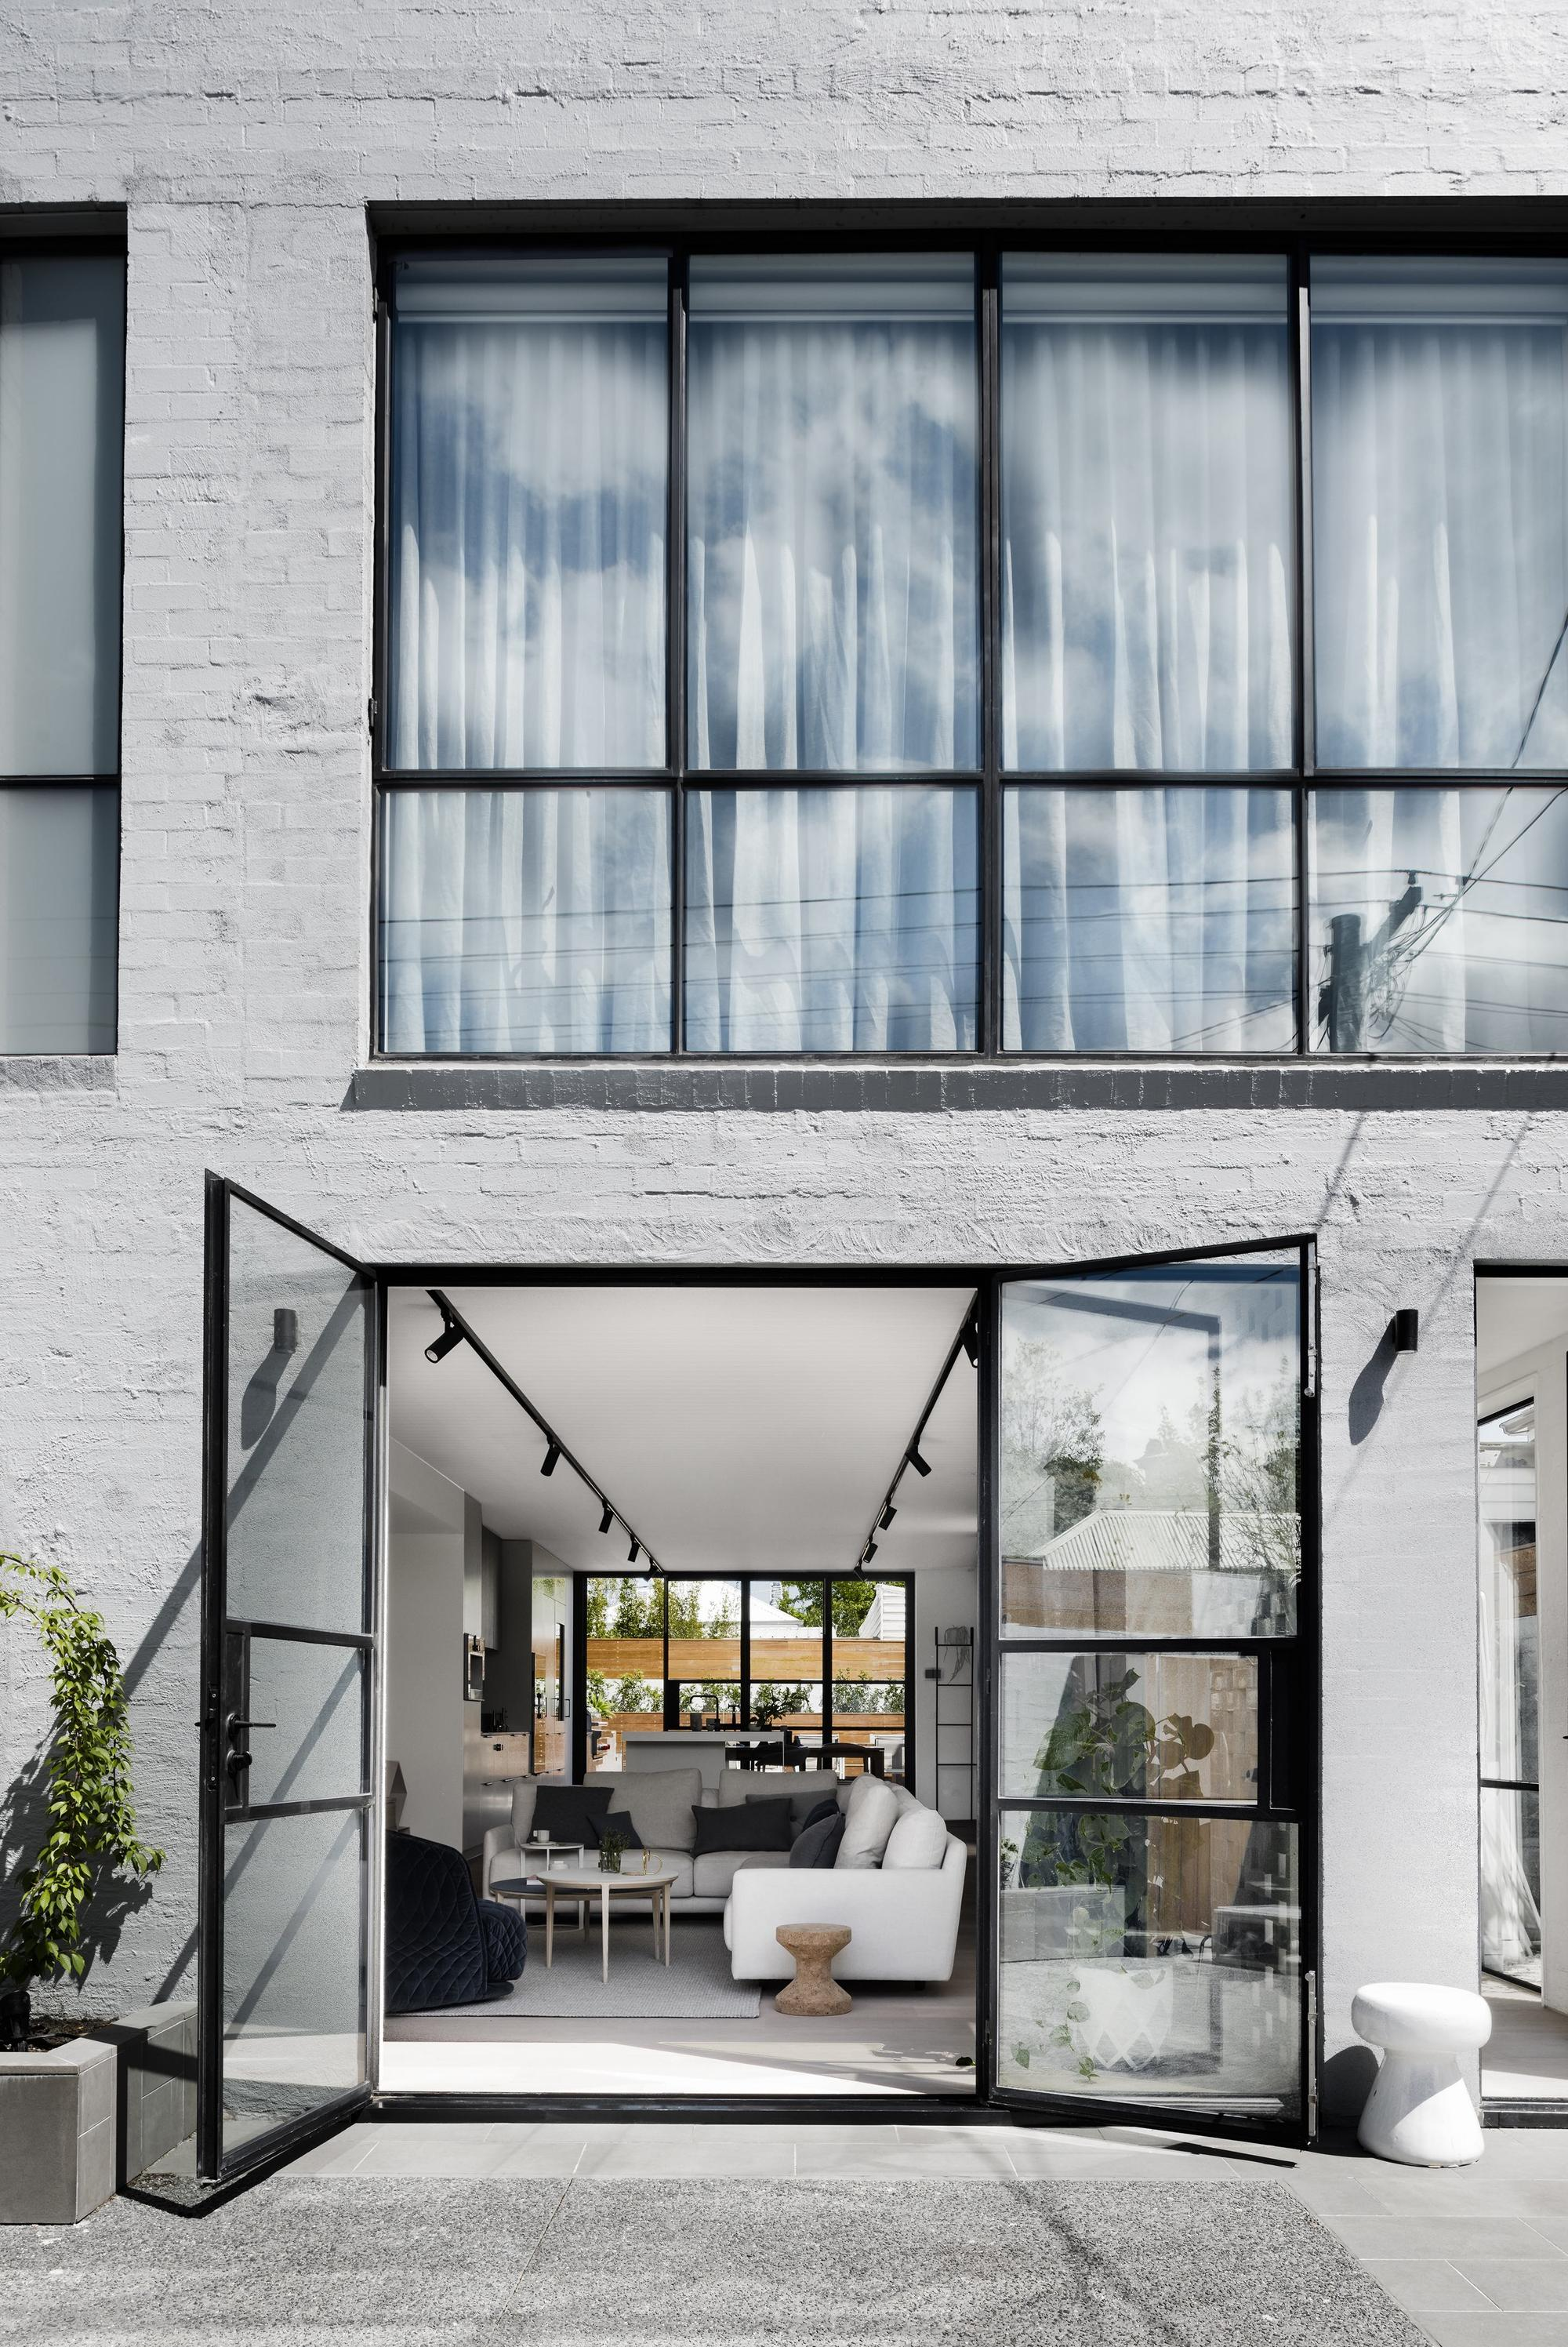 Interior Design Of Living Room With Balcony: Bell Street House / Techne Architecture + Interior Design